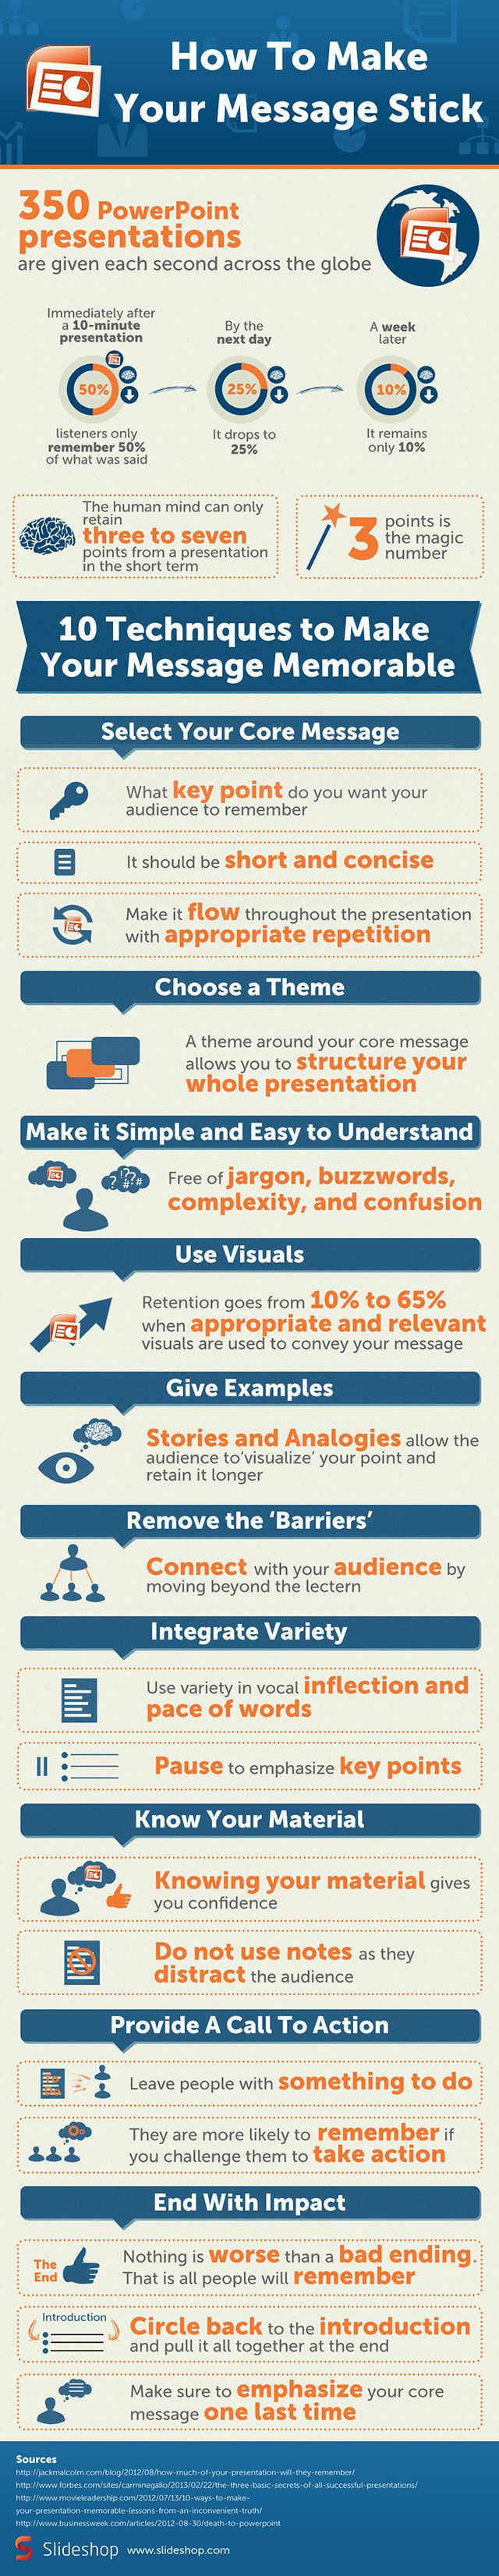 Great presentation tips in this How To Make Your Message stick [INFOGRAPHIC] #marketing #nonprofit #presentation